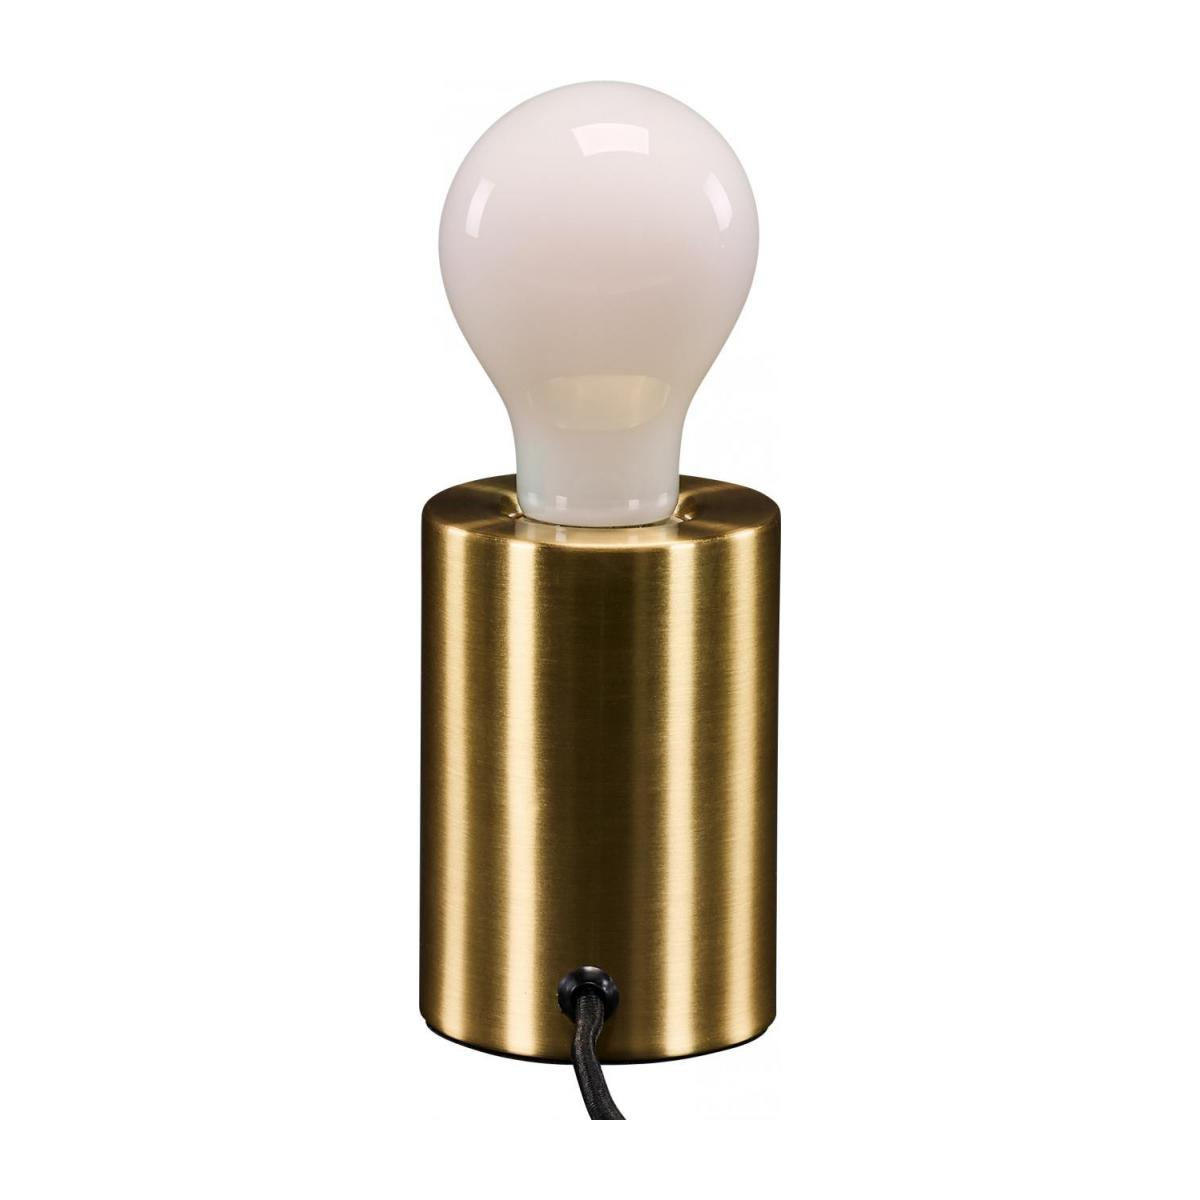 Lampe de table - Laiton n°4